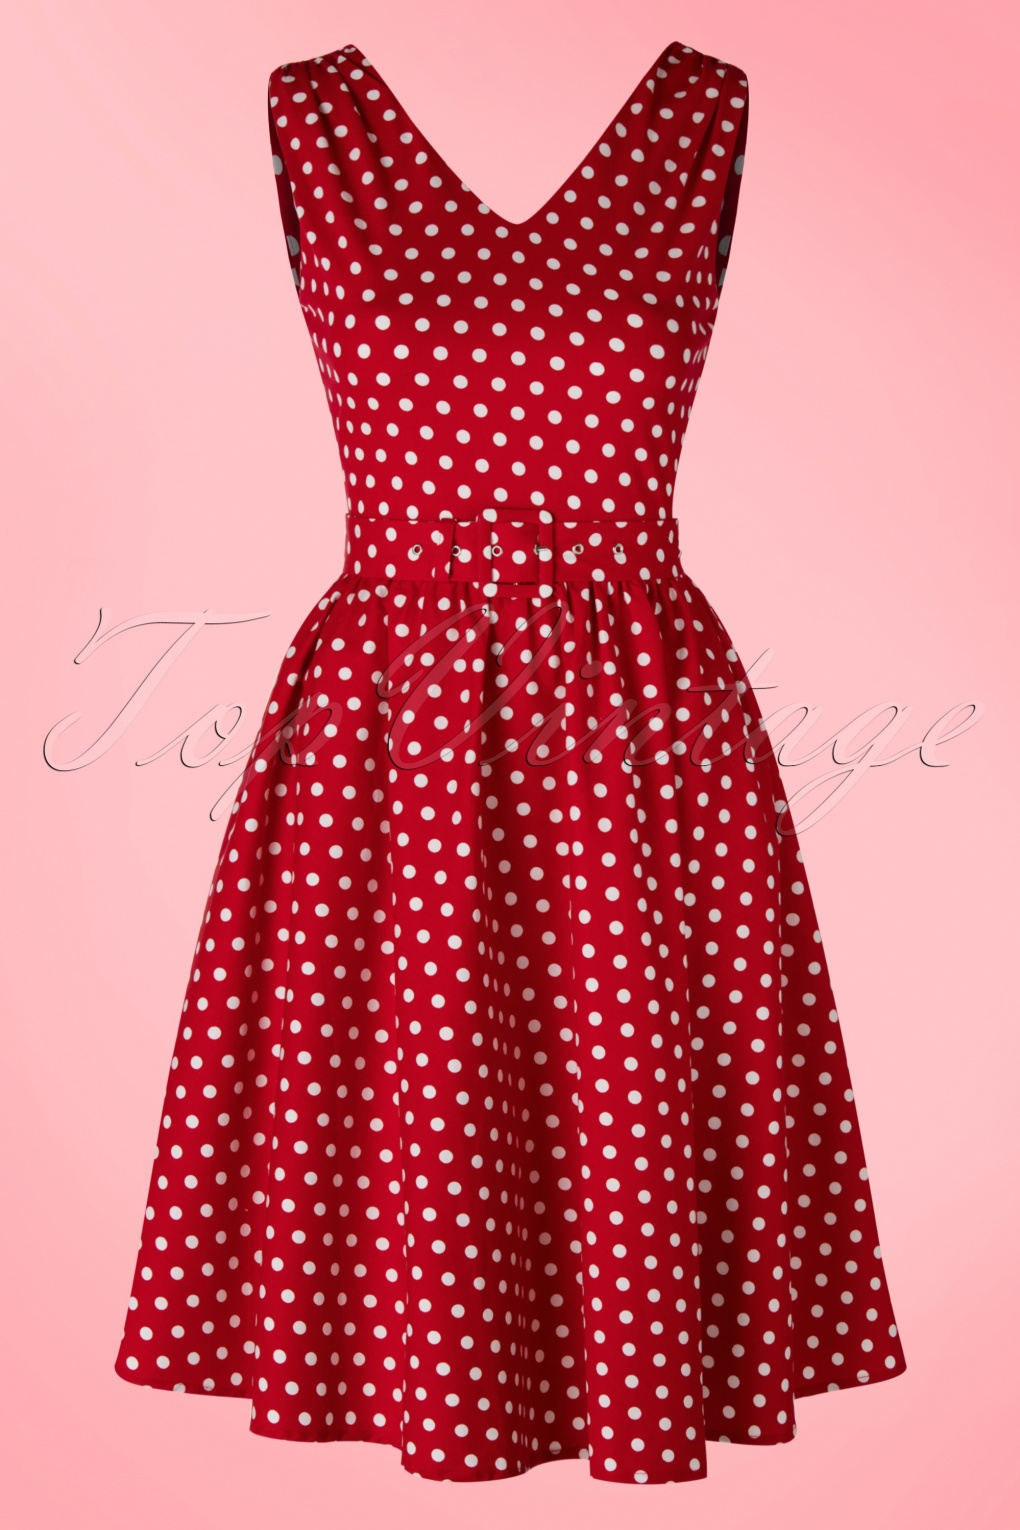 1950s Polka Dot Dresses 50s Wendy Polkadot Swing Dress in Red £38.13 AT vintagedancer.com